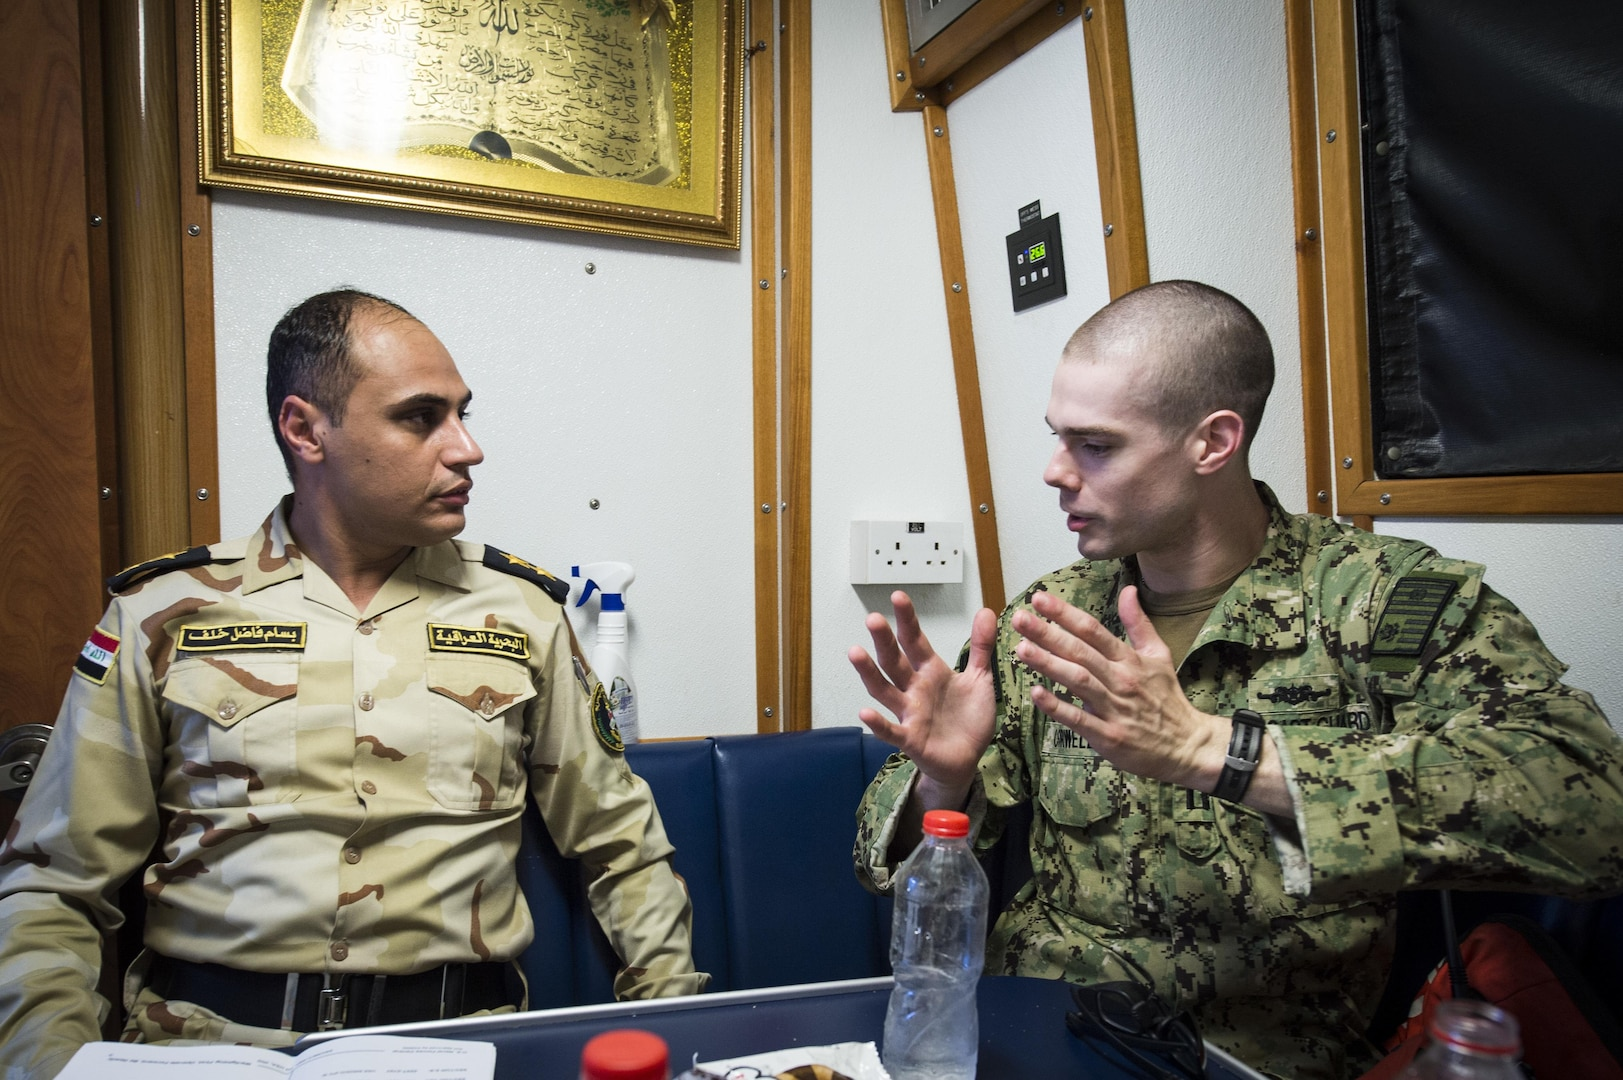 A U.S. Coast Guard Lt., assigned to Patrol Forces Southwest Asia (PATFORSWA), talks with commanding officer of the Iraqi Navy Swift Ship (P 302), before a Maritime Infrastructure Protection Exercise (MIPEX) between U.S. and Iraqi Navies, and U.S. Coast Guard. (U.S. Navy photo by Mass Communication Specialist 1st Class Benjamin A. Lewis/Released)